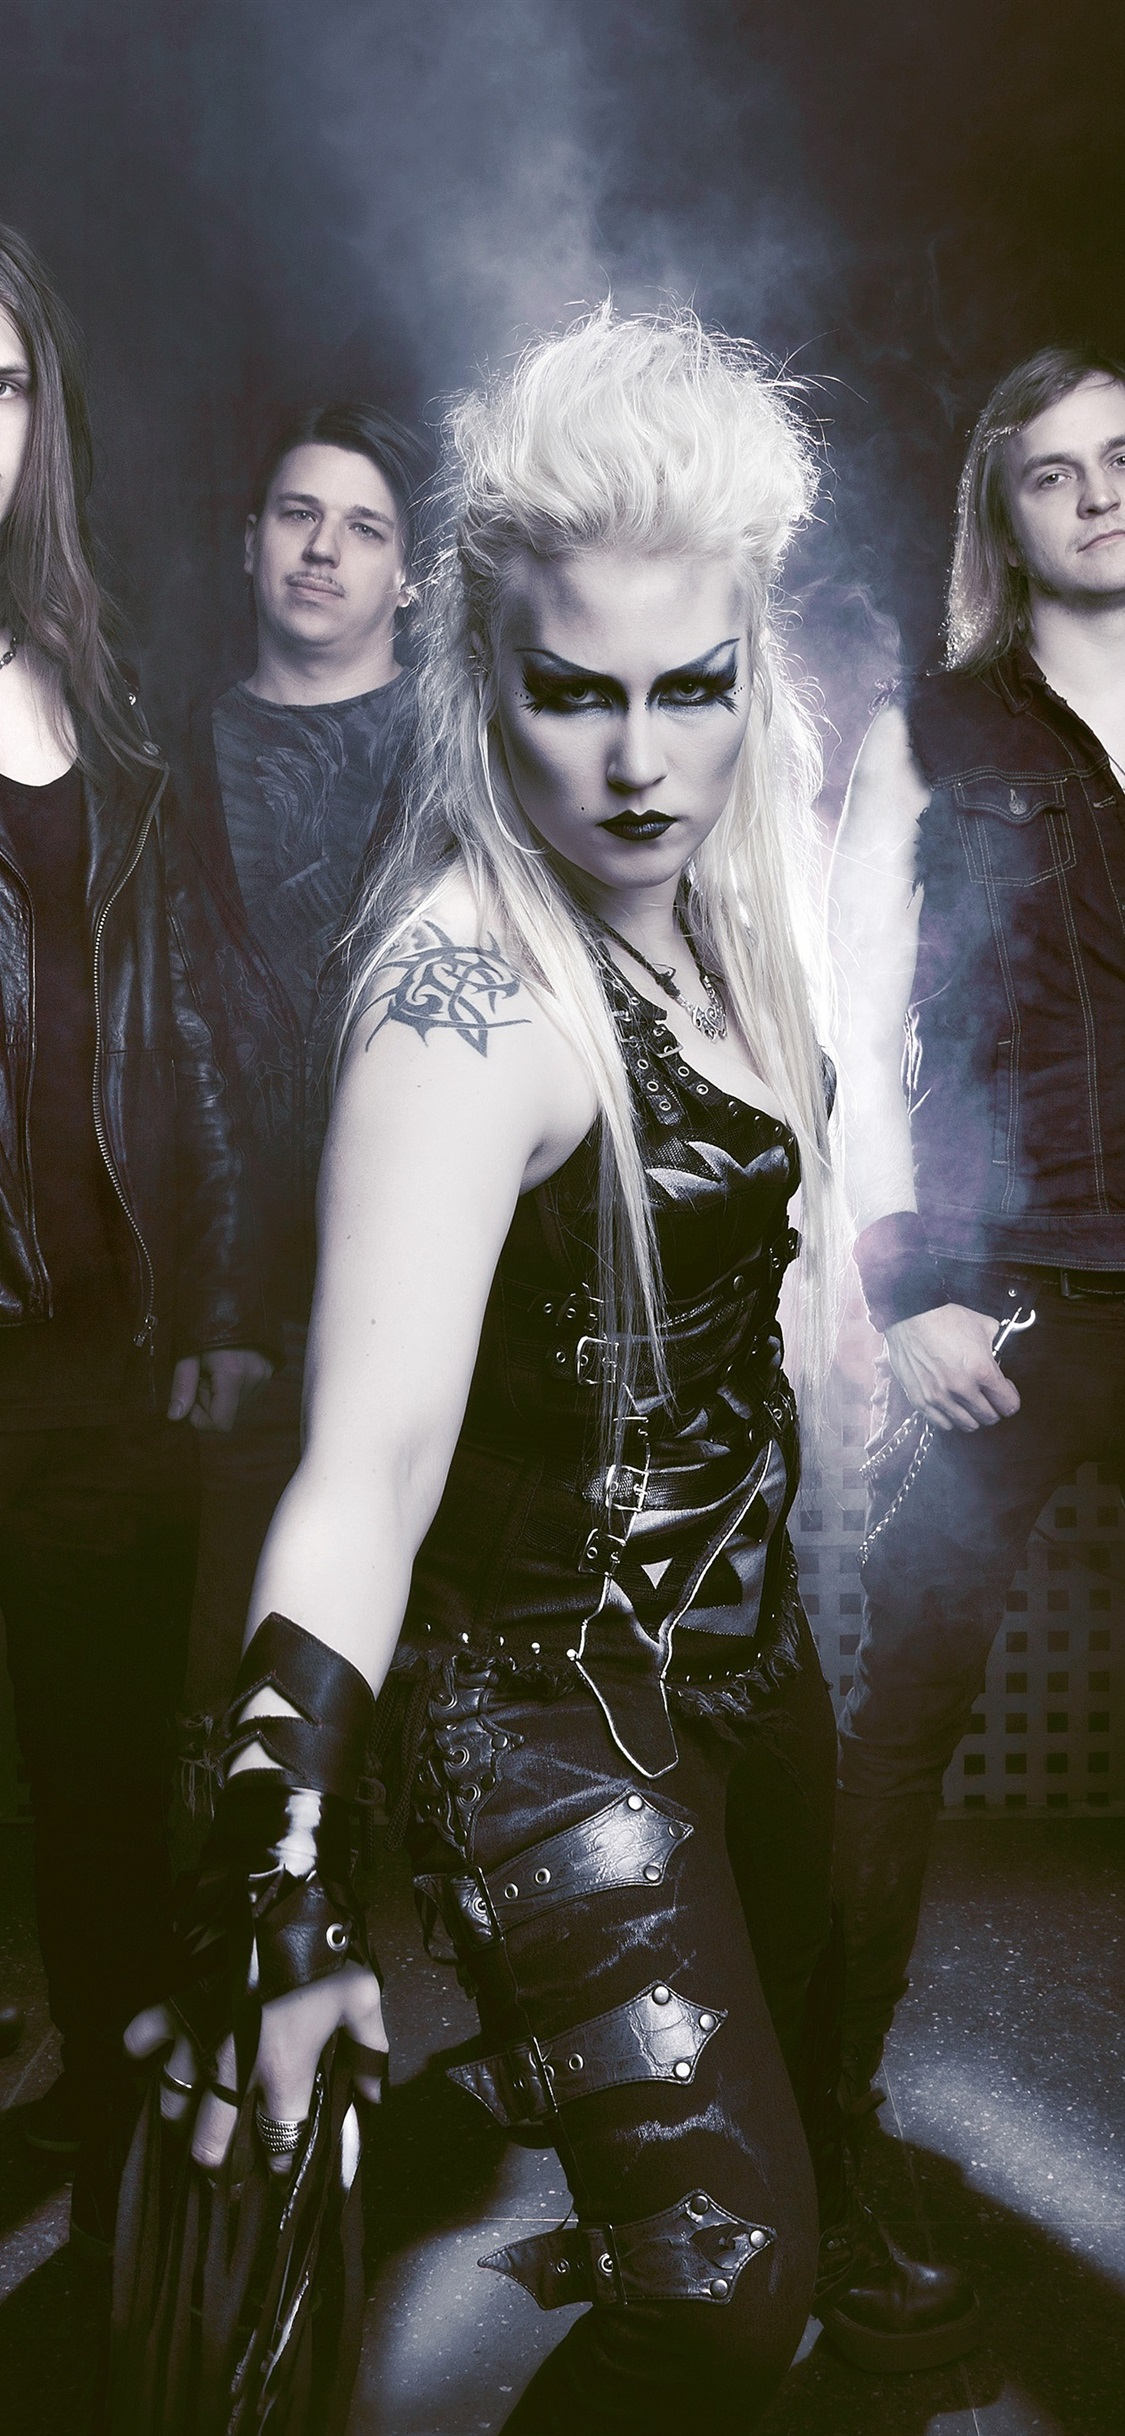 Battle Beast Finland Heavy Metal Band 1125x2436 Iphone 11 Pro Xs X Wallpaper Background Picture Image